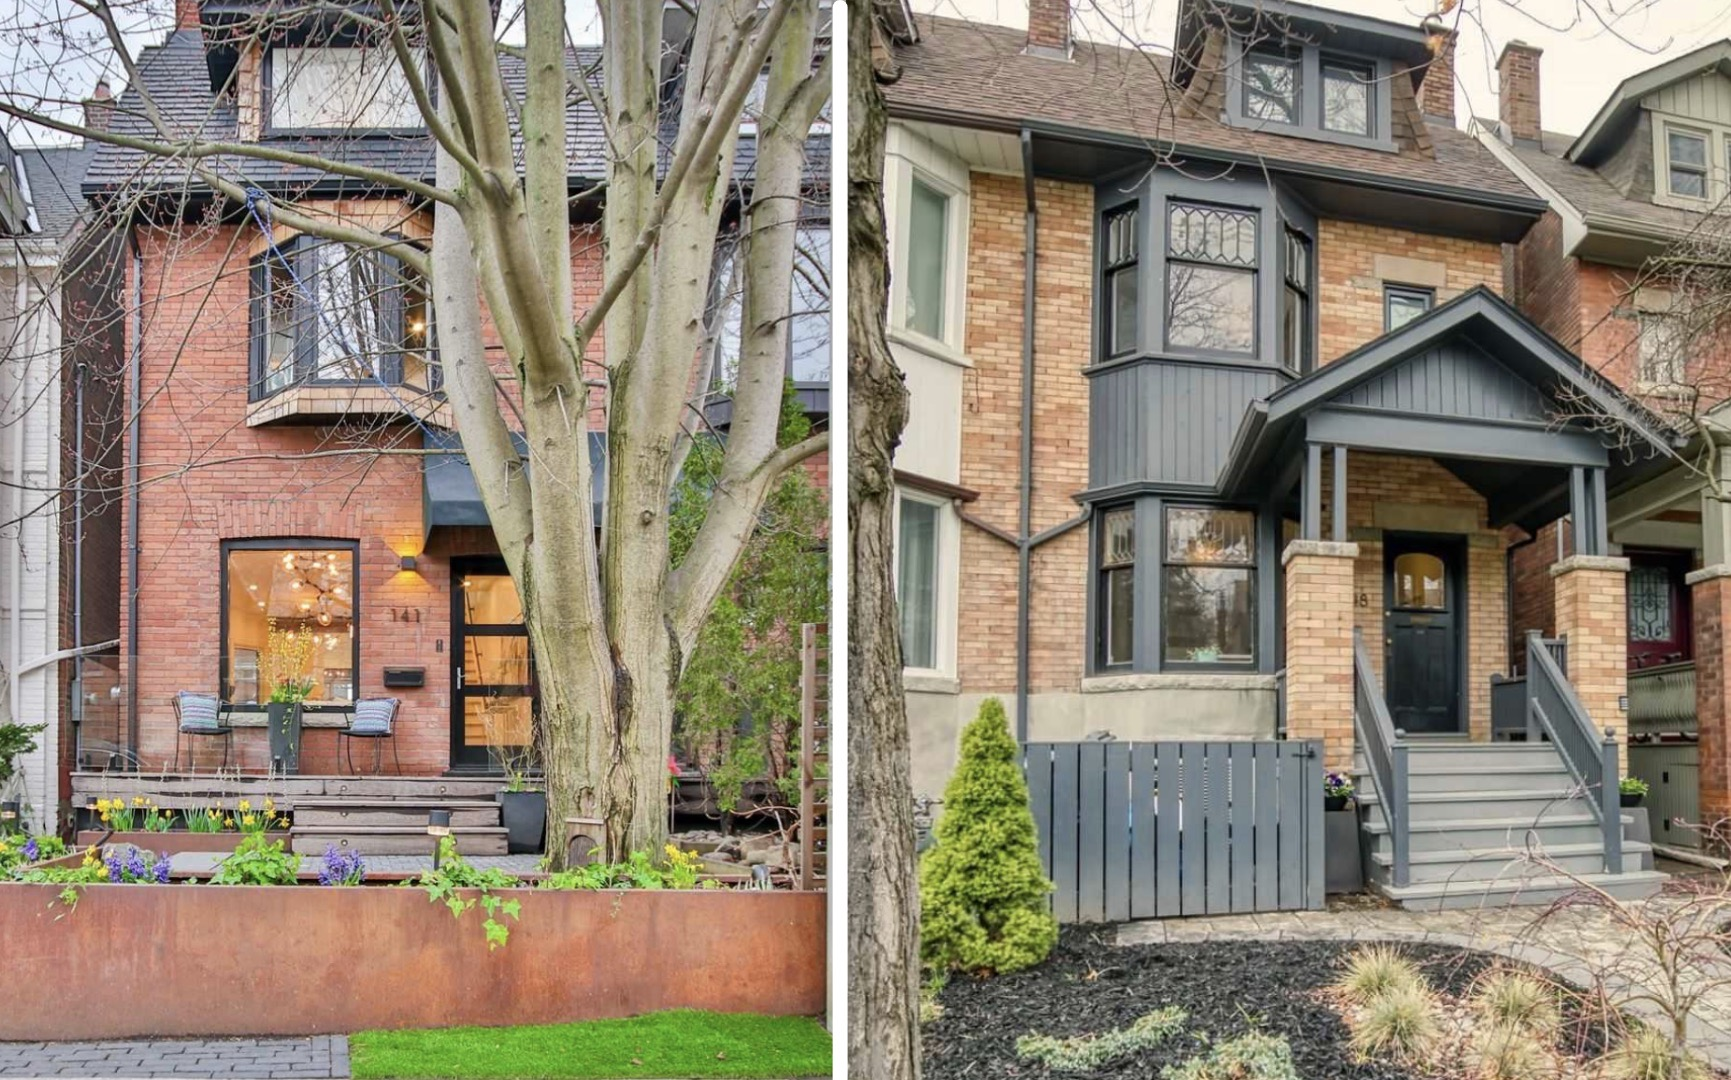 East vs. West: Two Homes Sell for $500k Over in Opposite Ends of Town